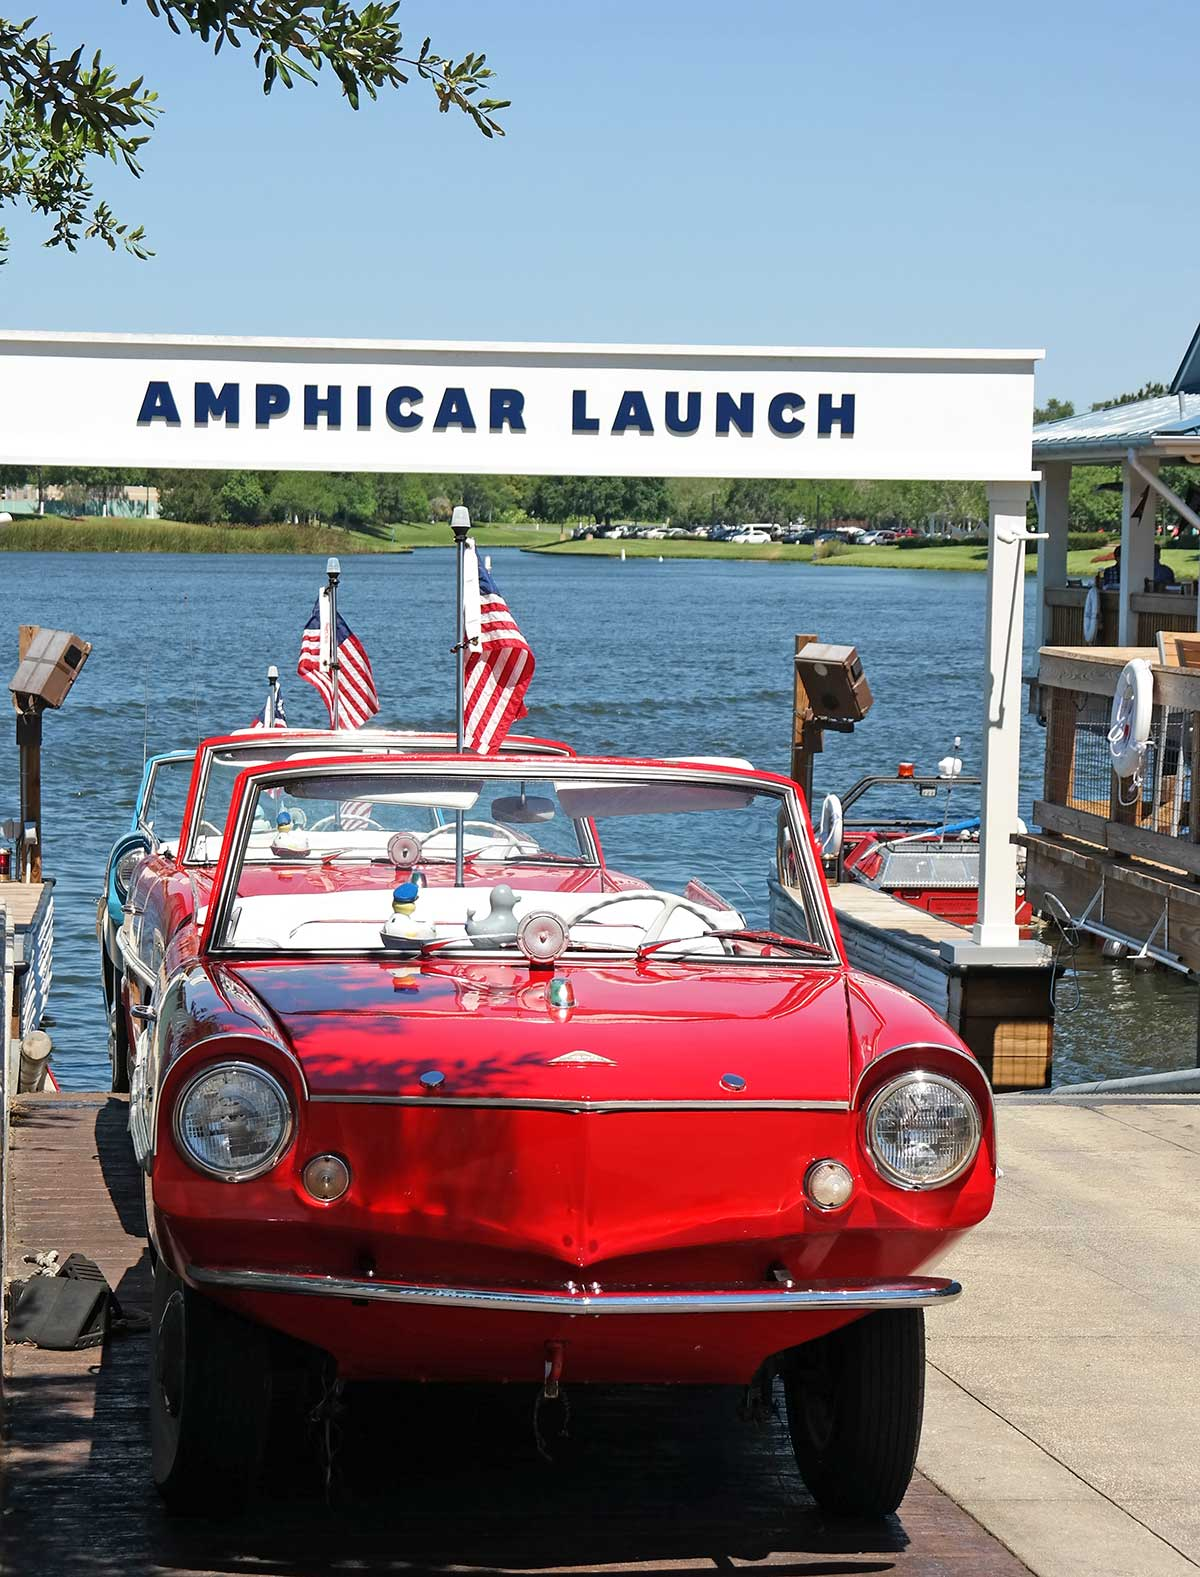 amphicar at Disney Springs, Orlando